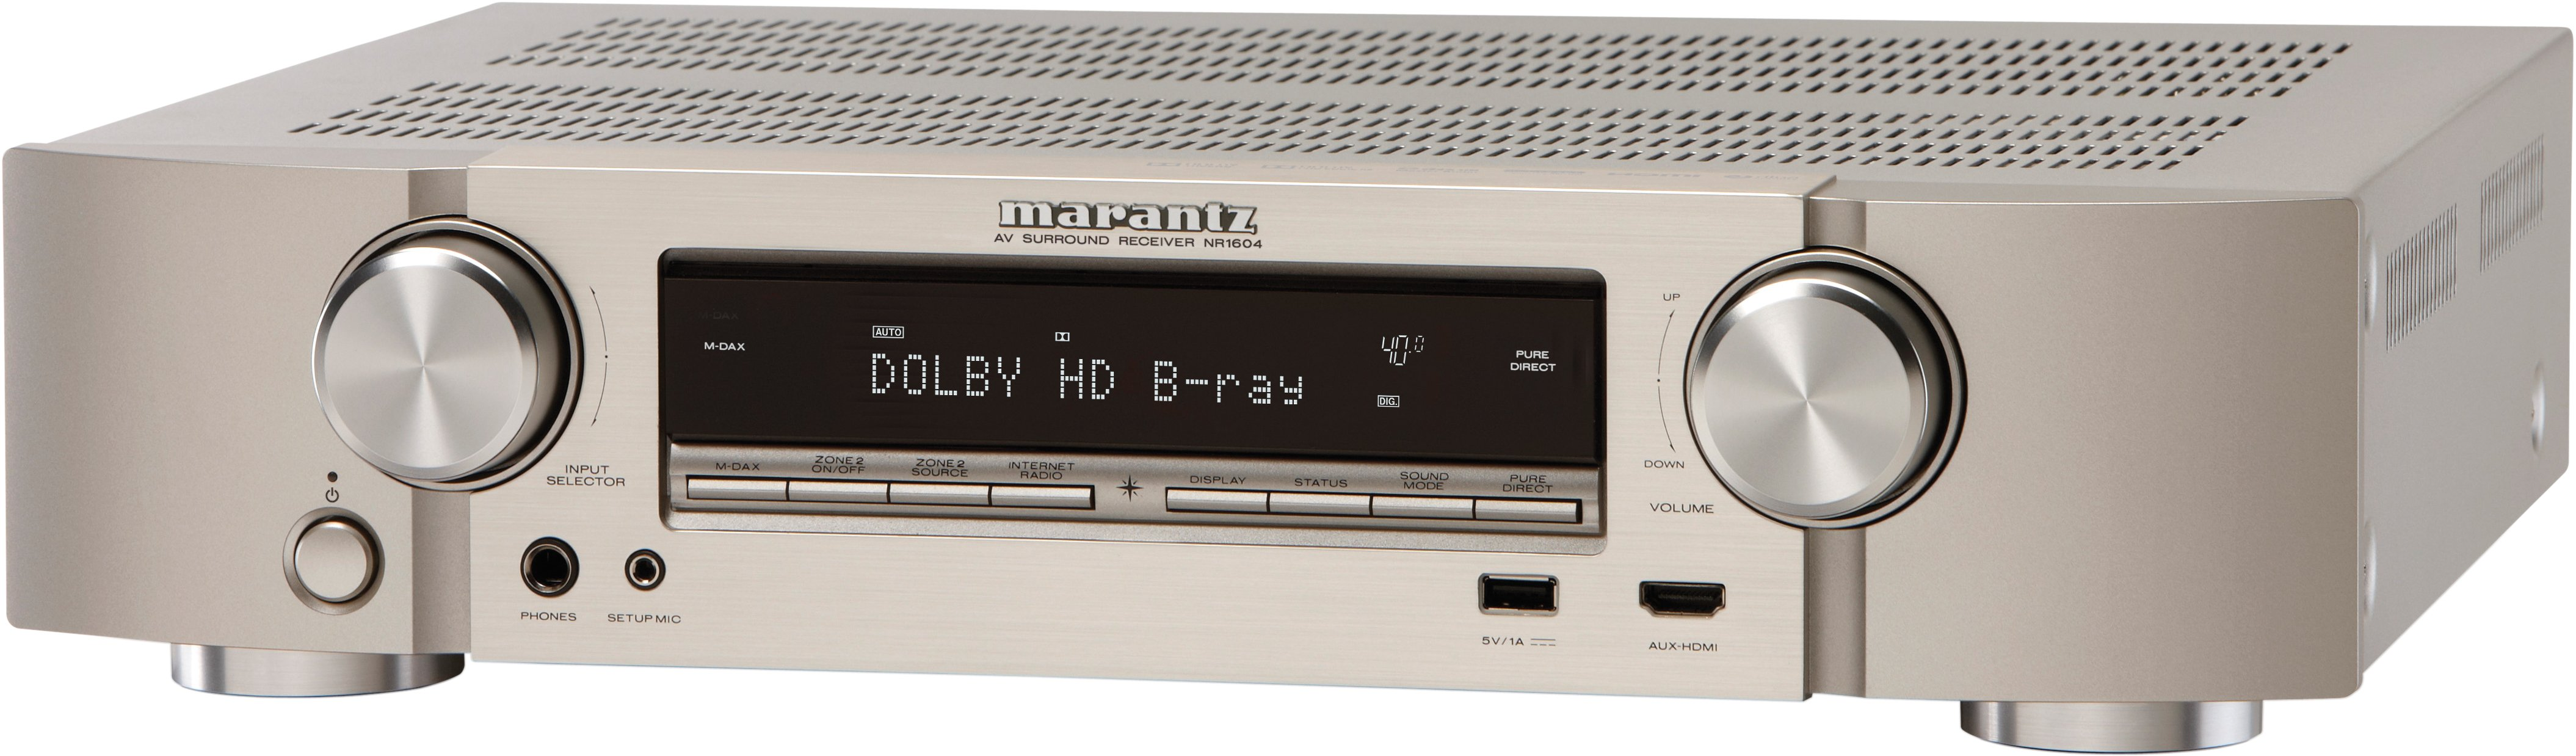 The Official Marantz Nr1604 Owners Thread Avs Forum Home Xbox 360 Automatically Resets With Hdmi Switches Page 10 Theater Discussions And Reviews